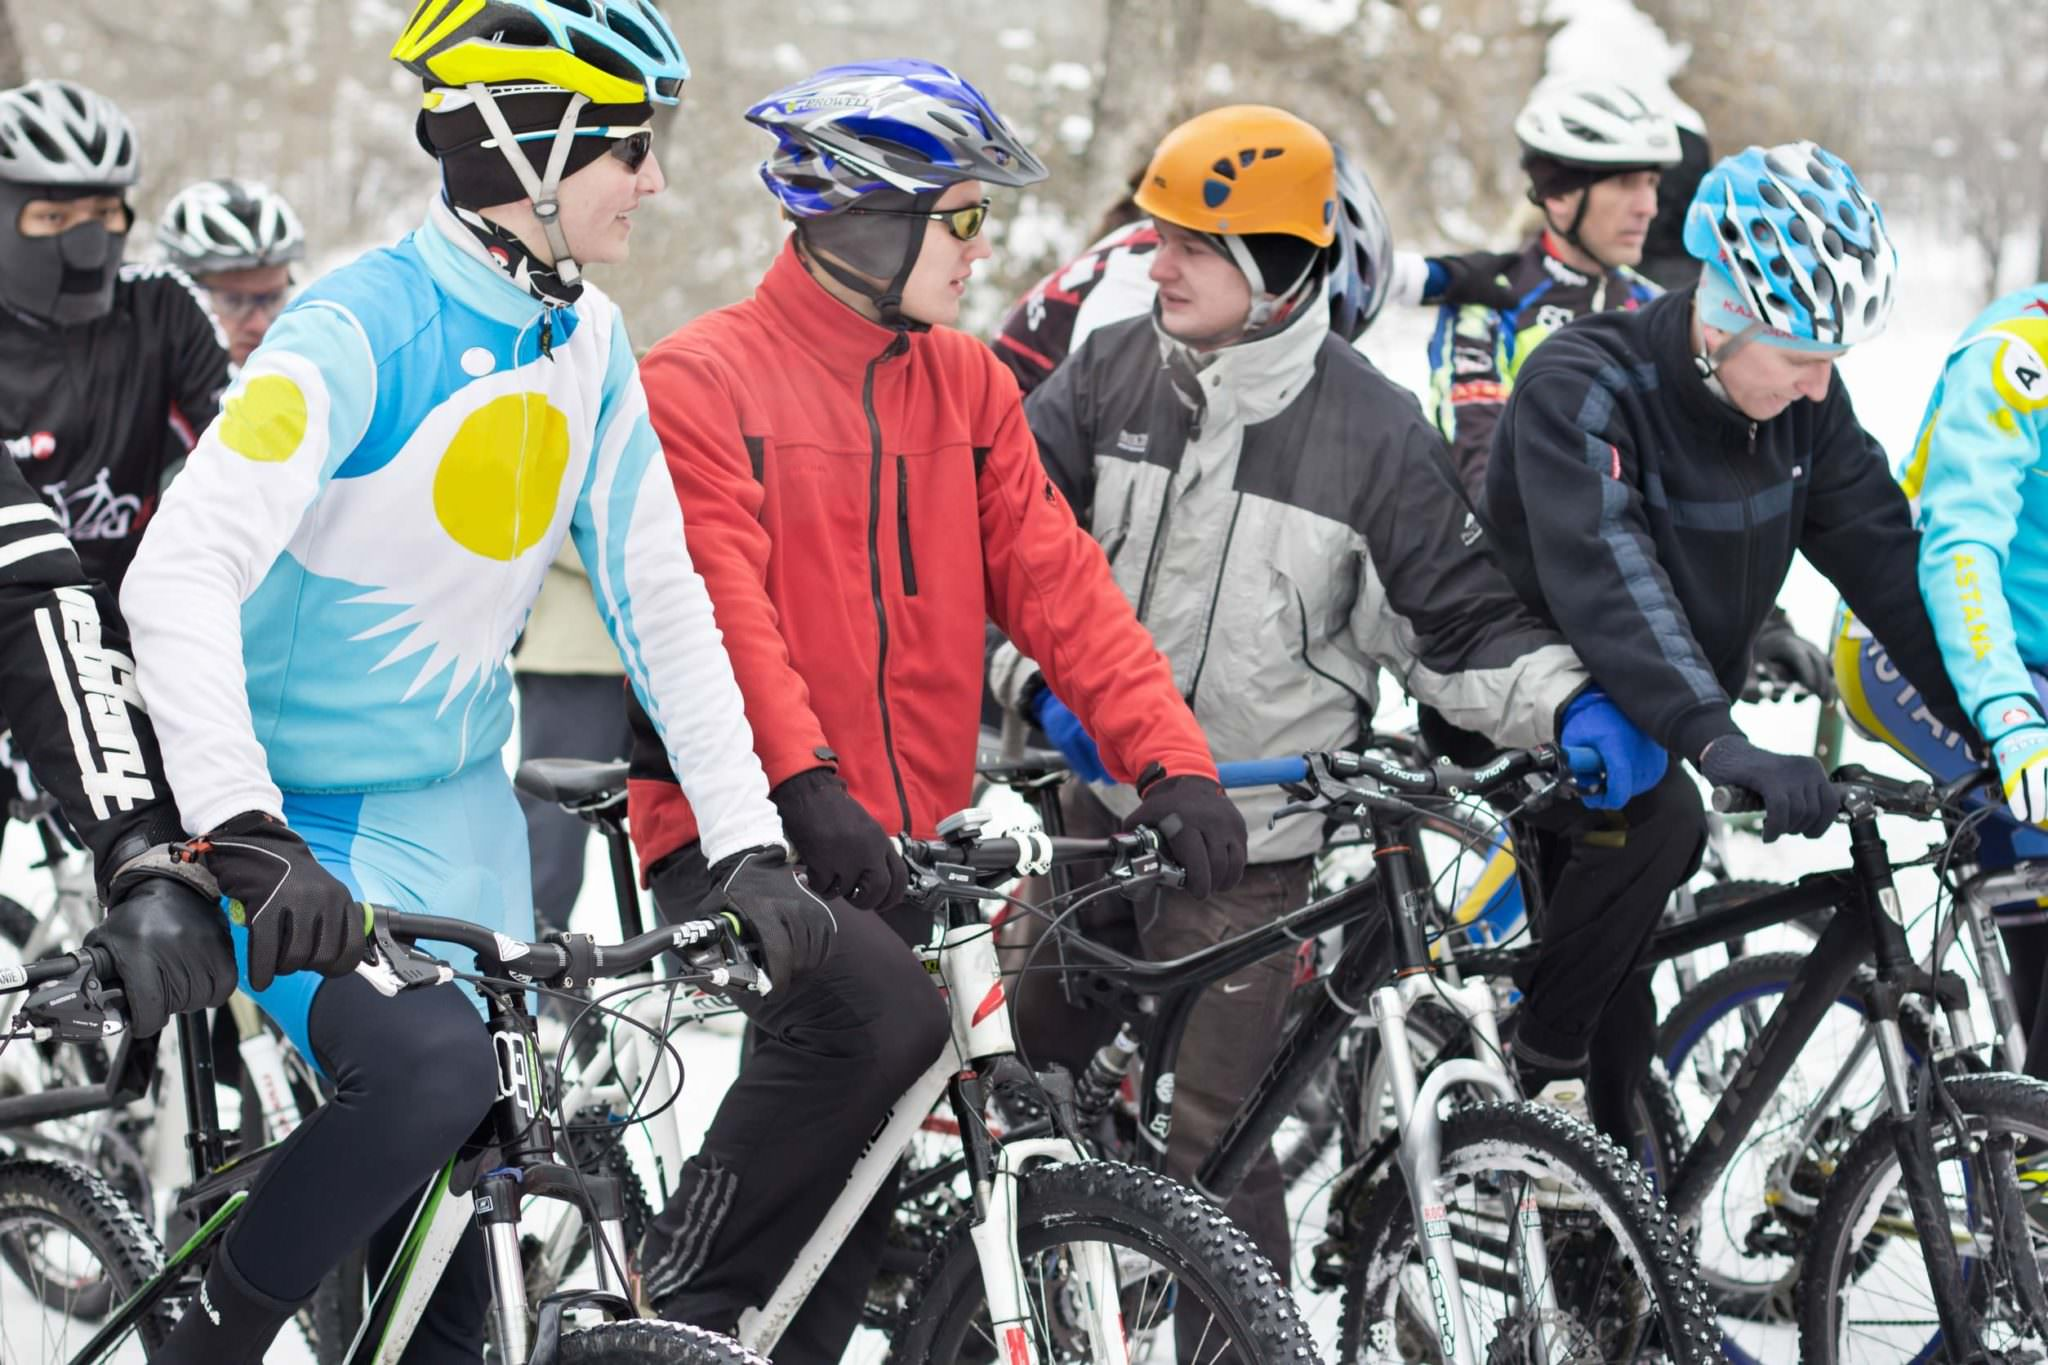 Winter cyclists with different cycling jackets